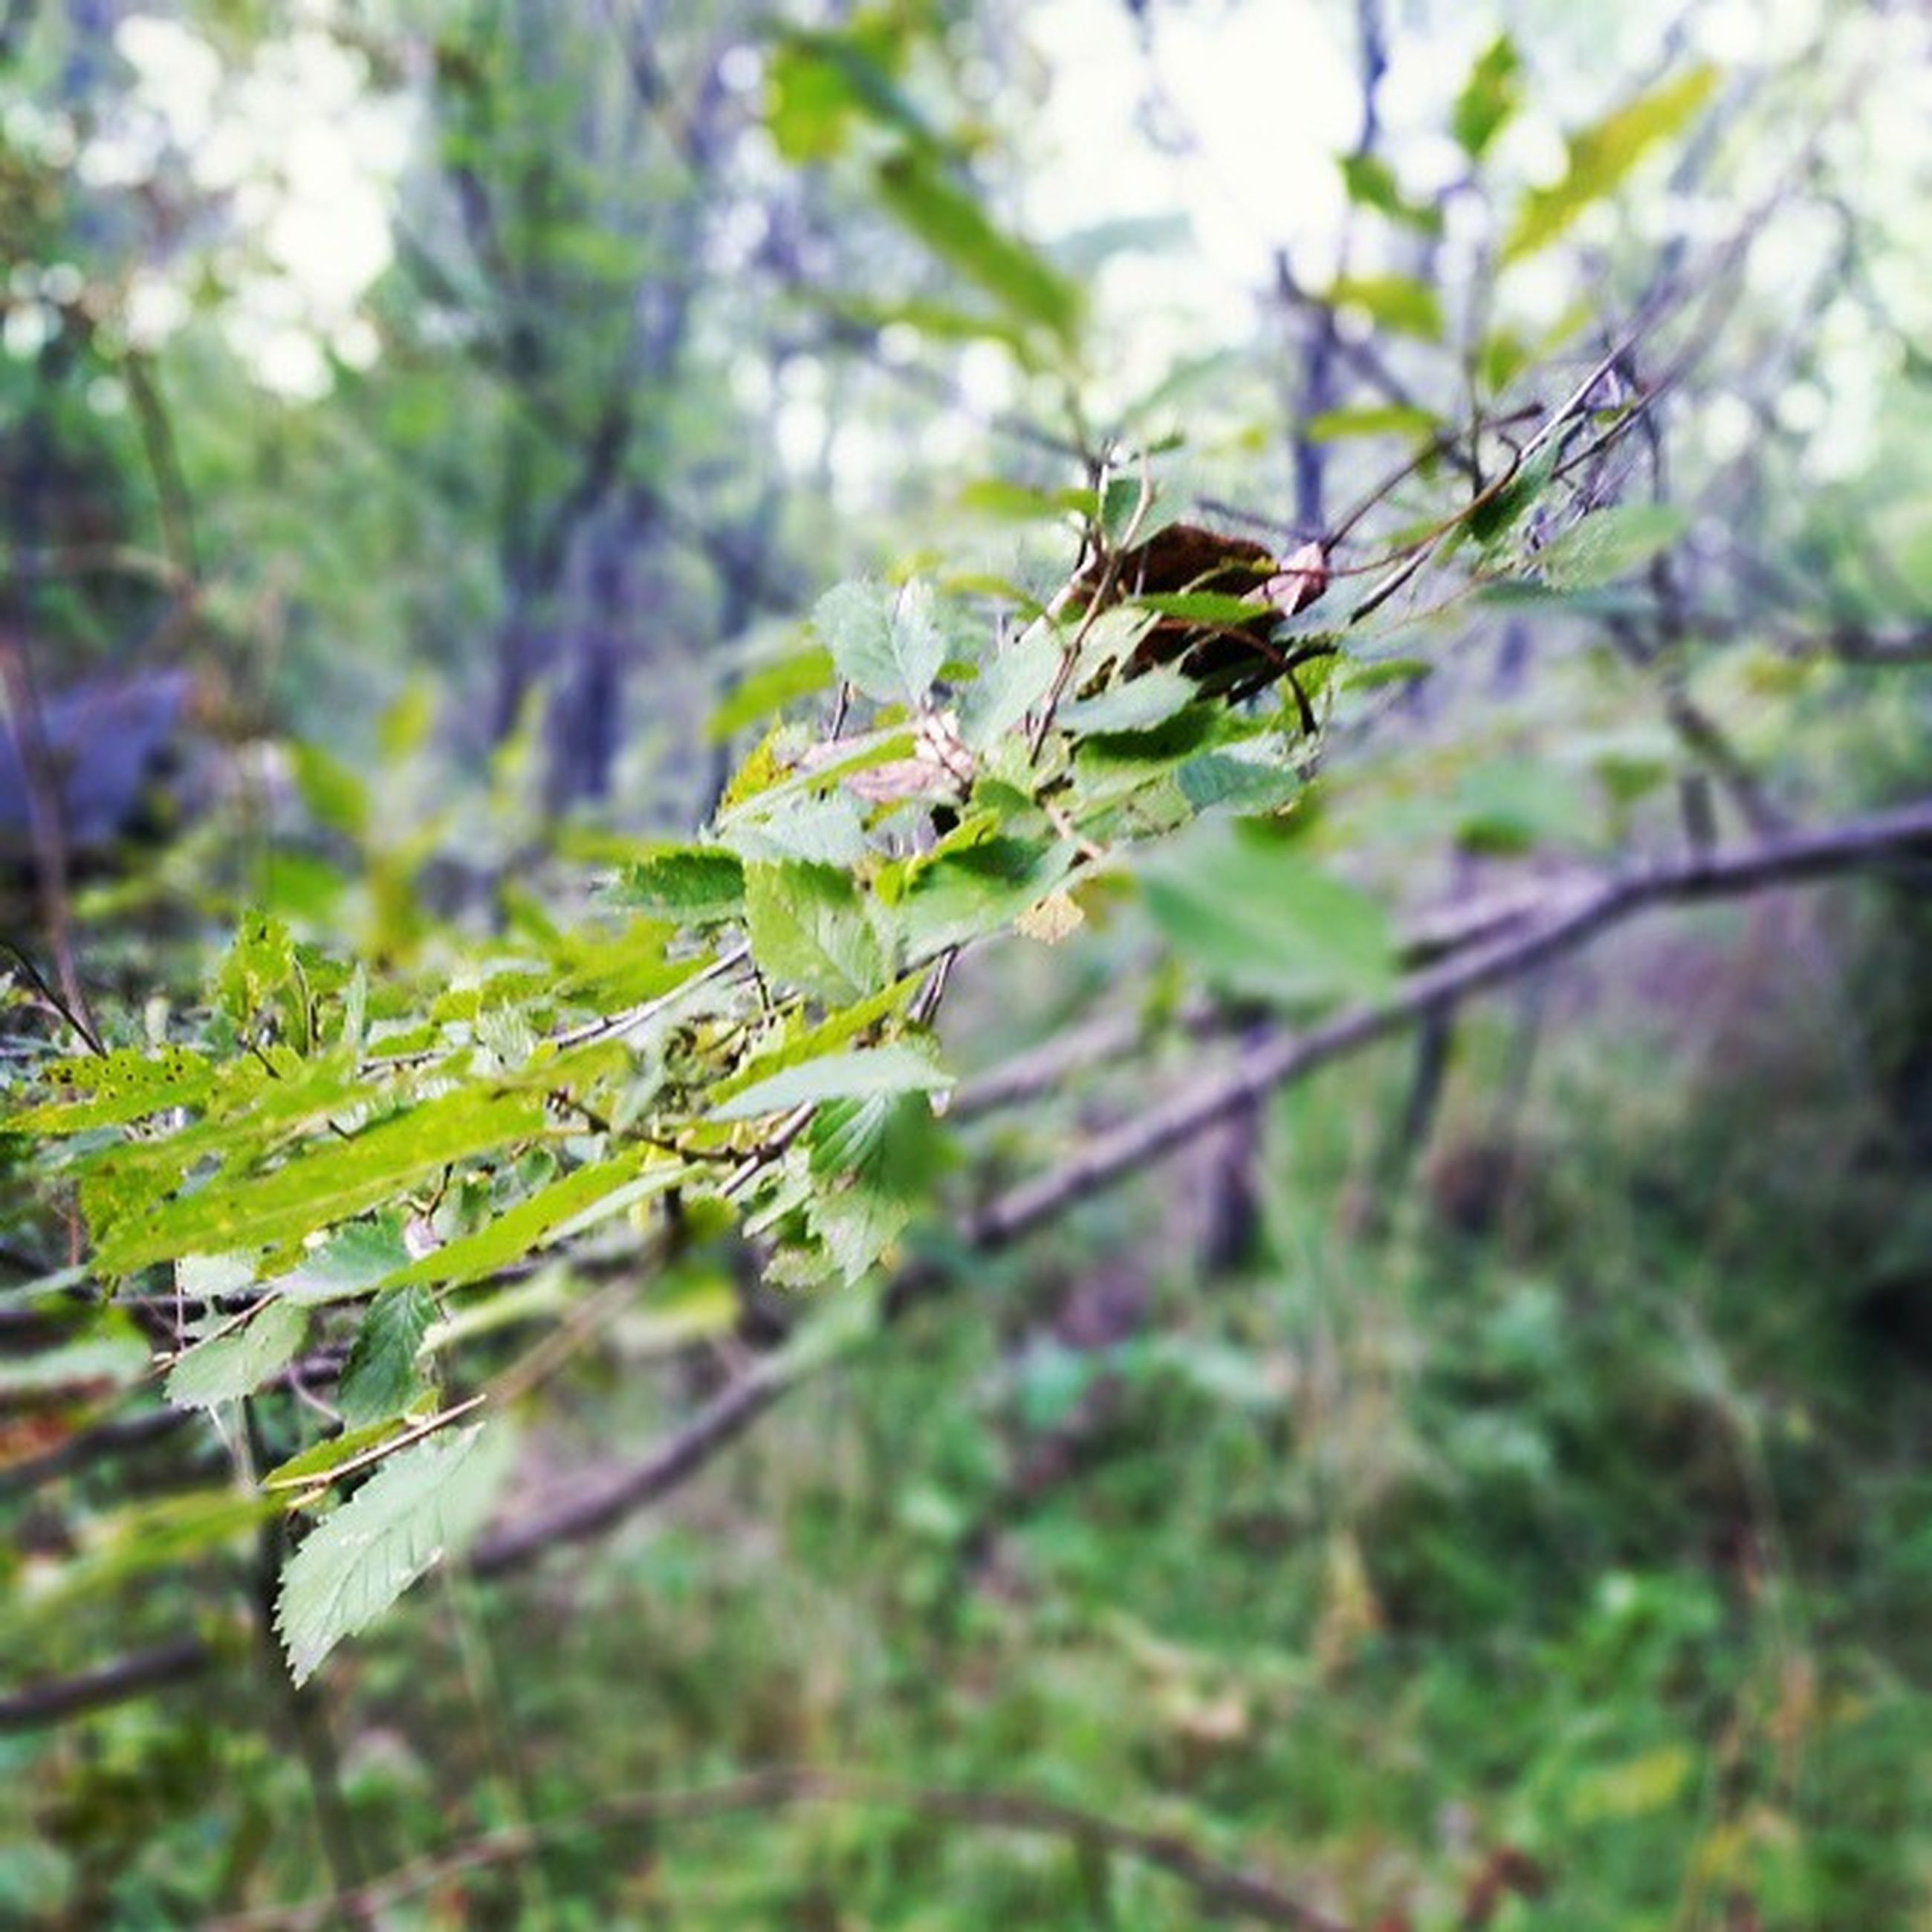 growth, focus on foreground, plant, nature, flower, close-up, selective focus, beauty in nature, stem, freshness, insect, green color, fragility, day, branch, tree, outdoors, field, no people, twig